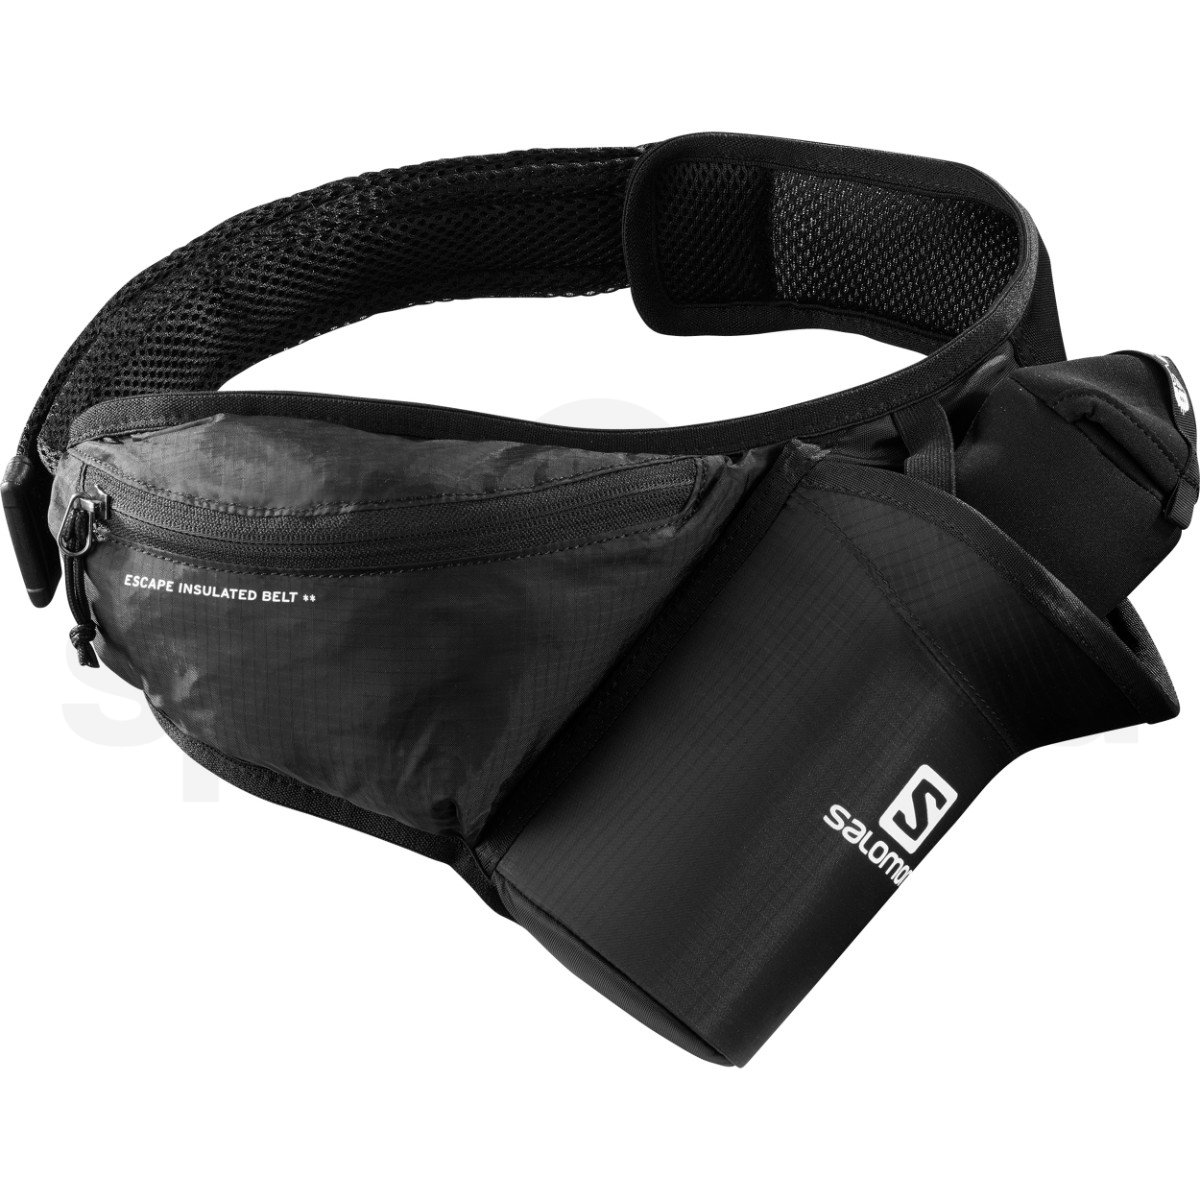 LC1172900_0_GHO_U_escape_insulated_belt_black.jpg.cq5dam.web.1200.1200